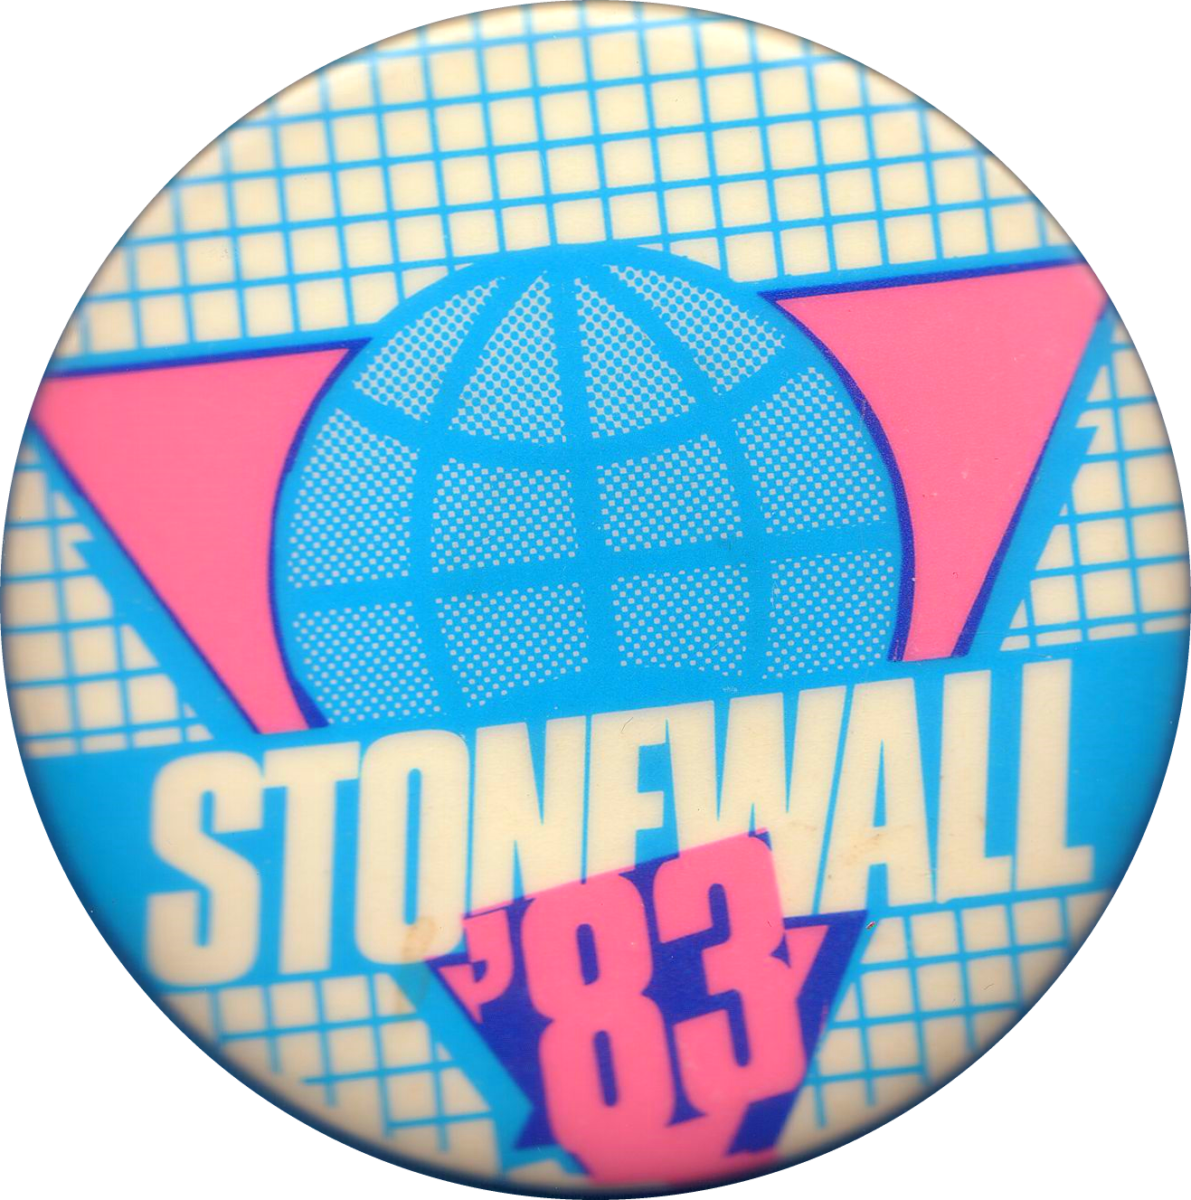 Stonewall '83 (Melbourne, 1983) Badge Collection, 1-03-05